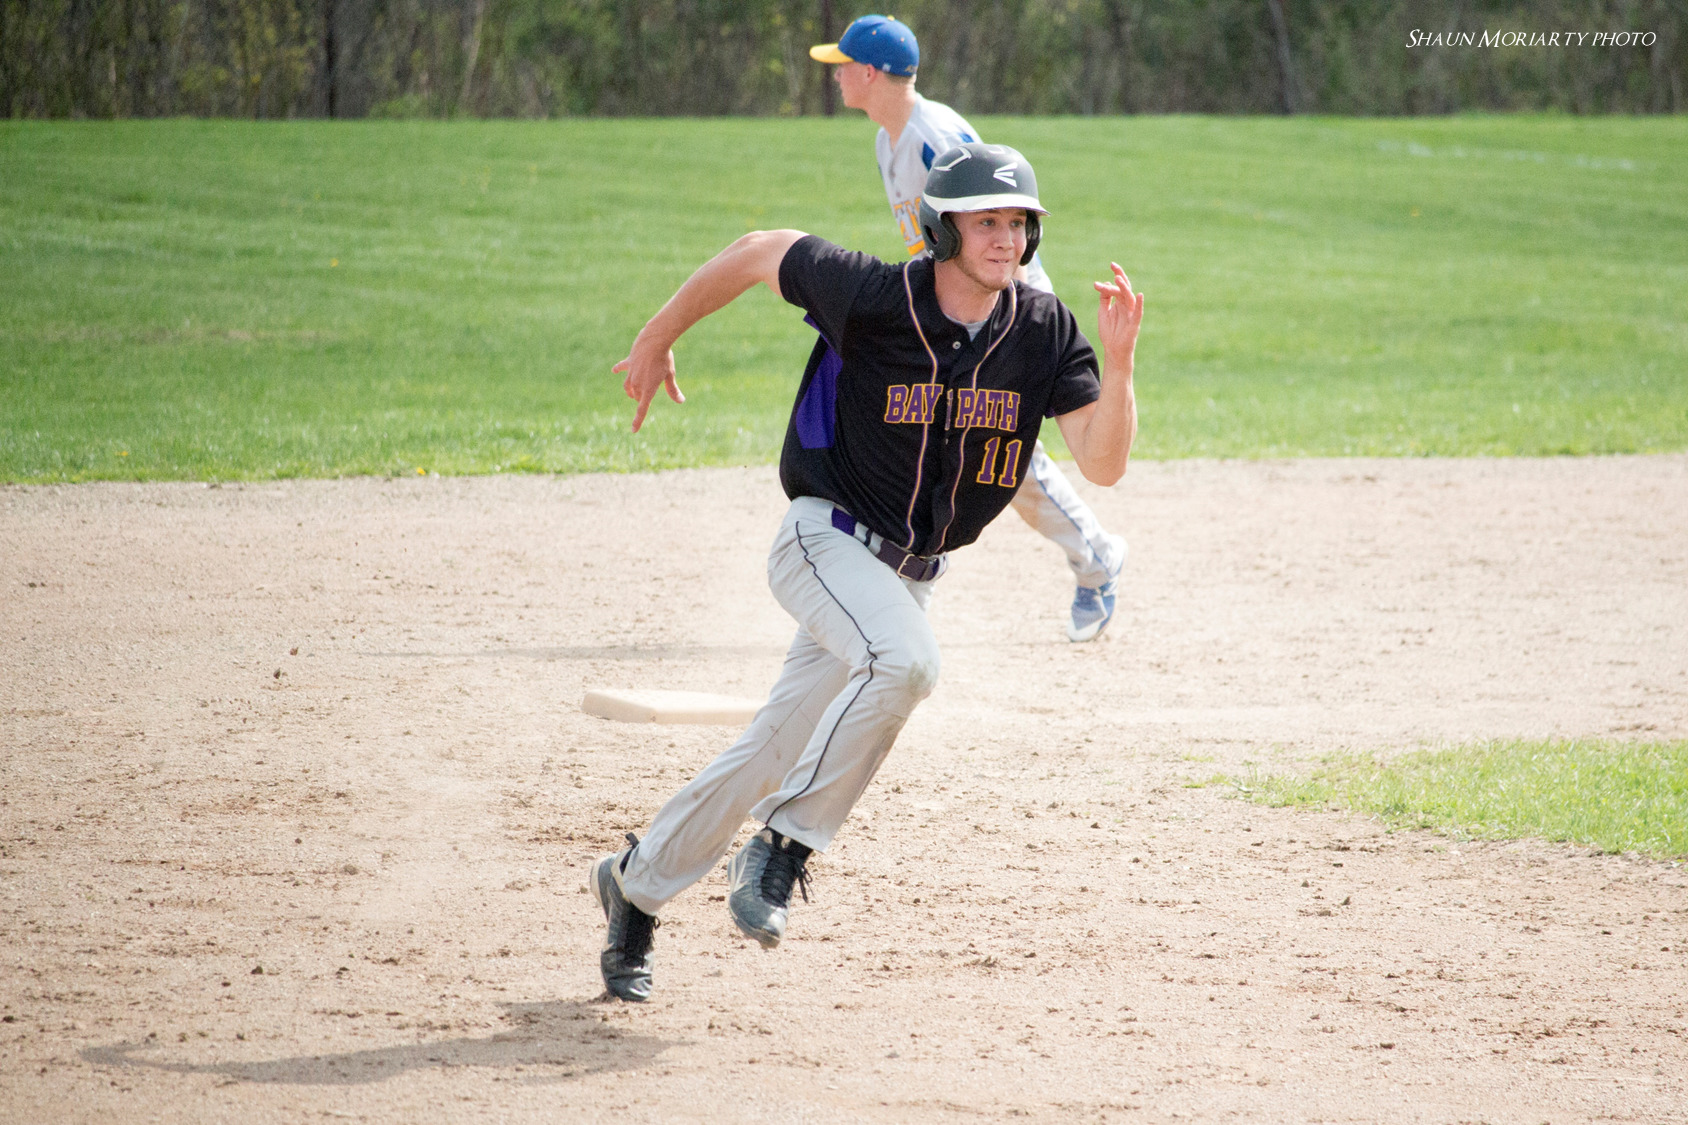 Baseball: Assabet Valley 5, Bay Path 7